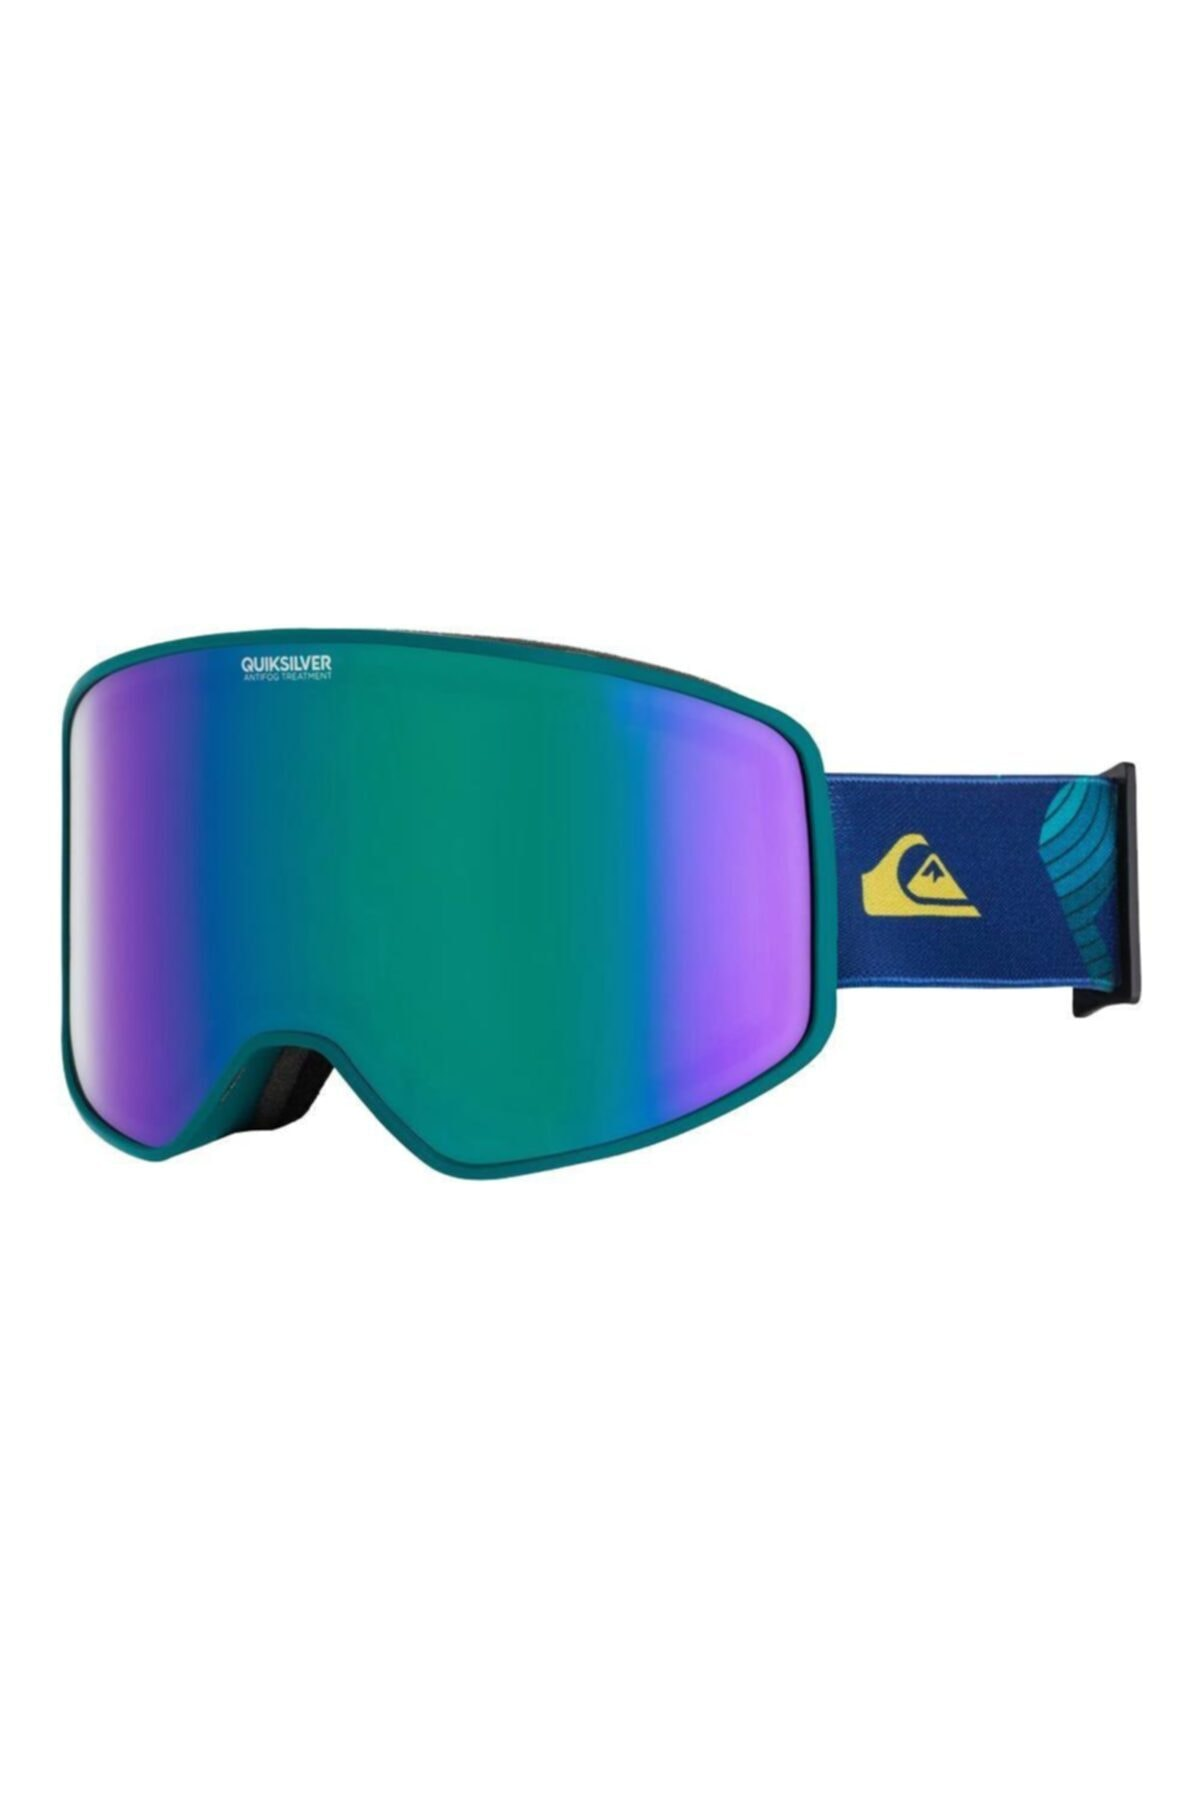 Quiksilver Storm M Sngg 1